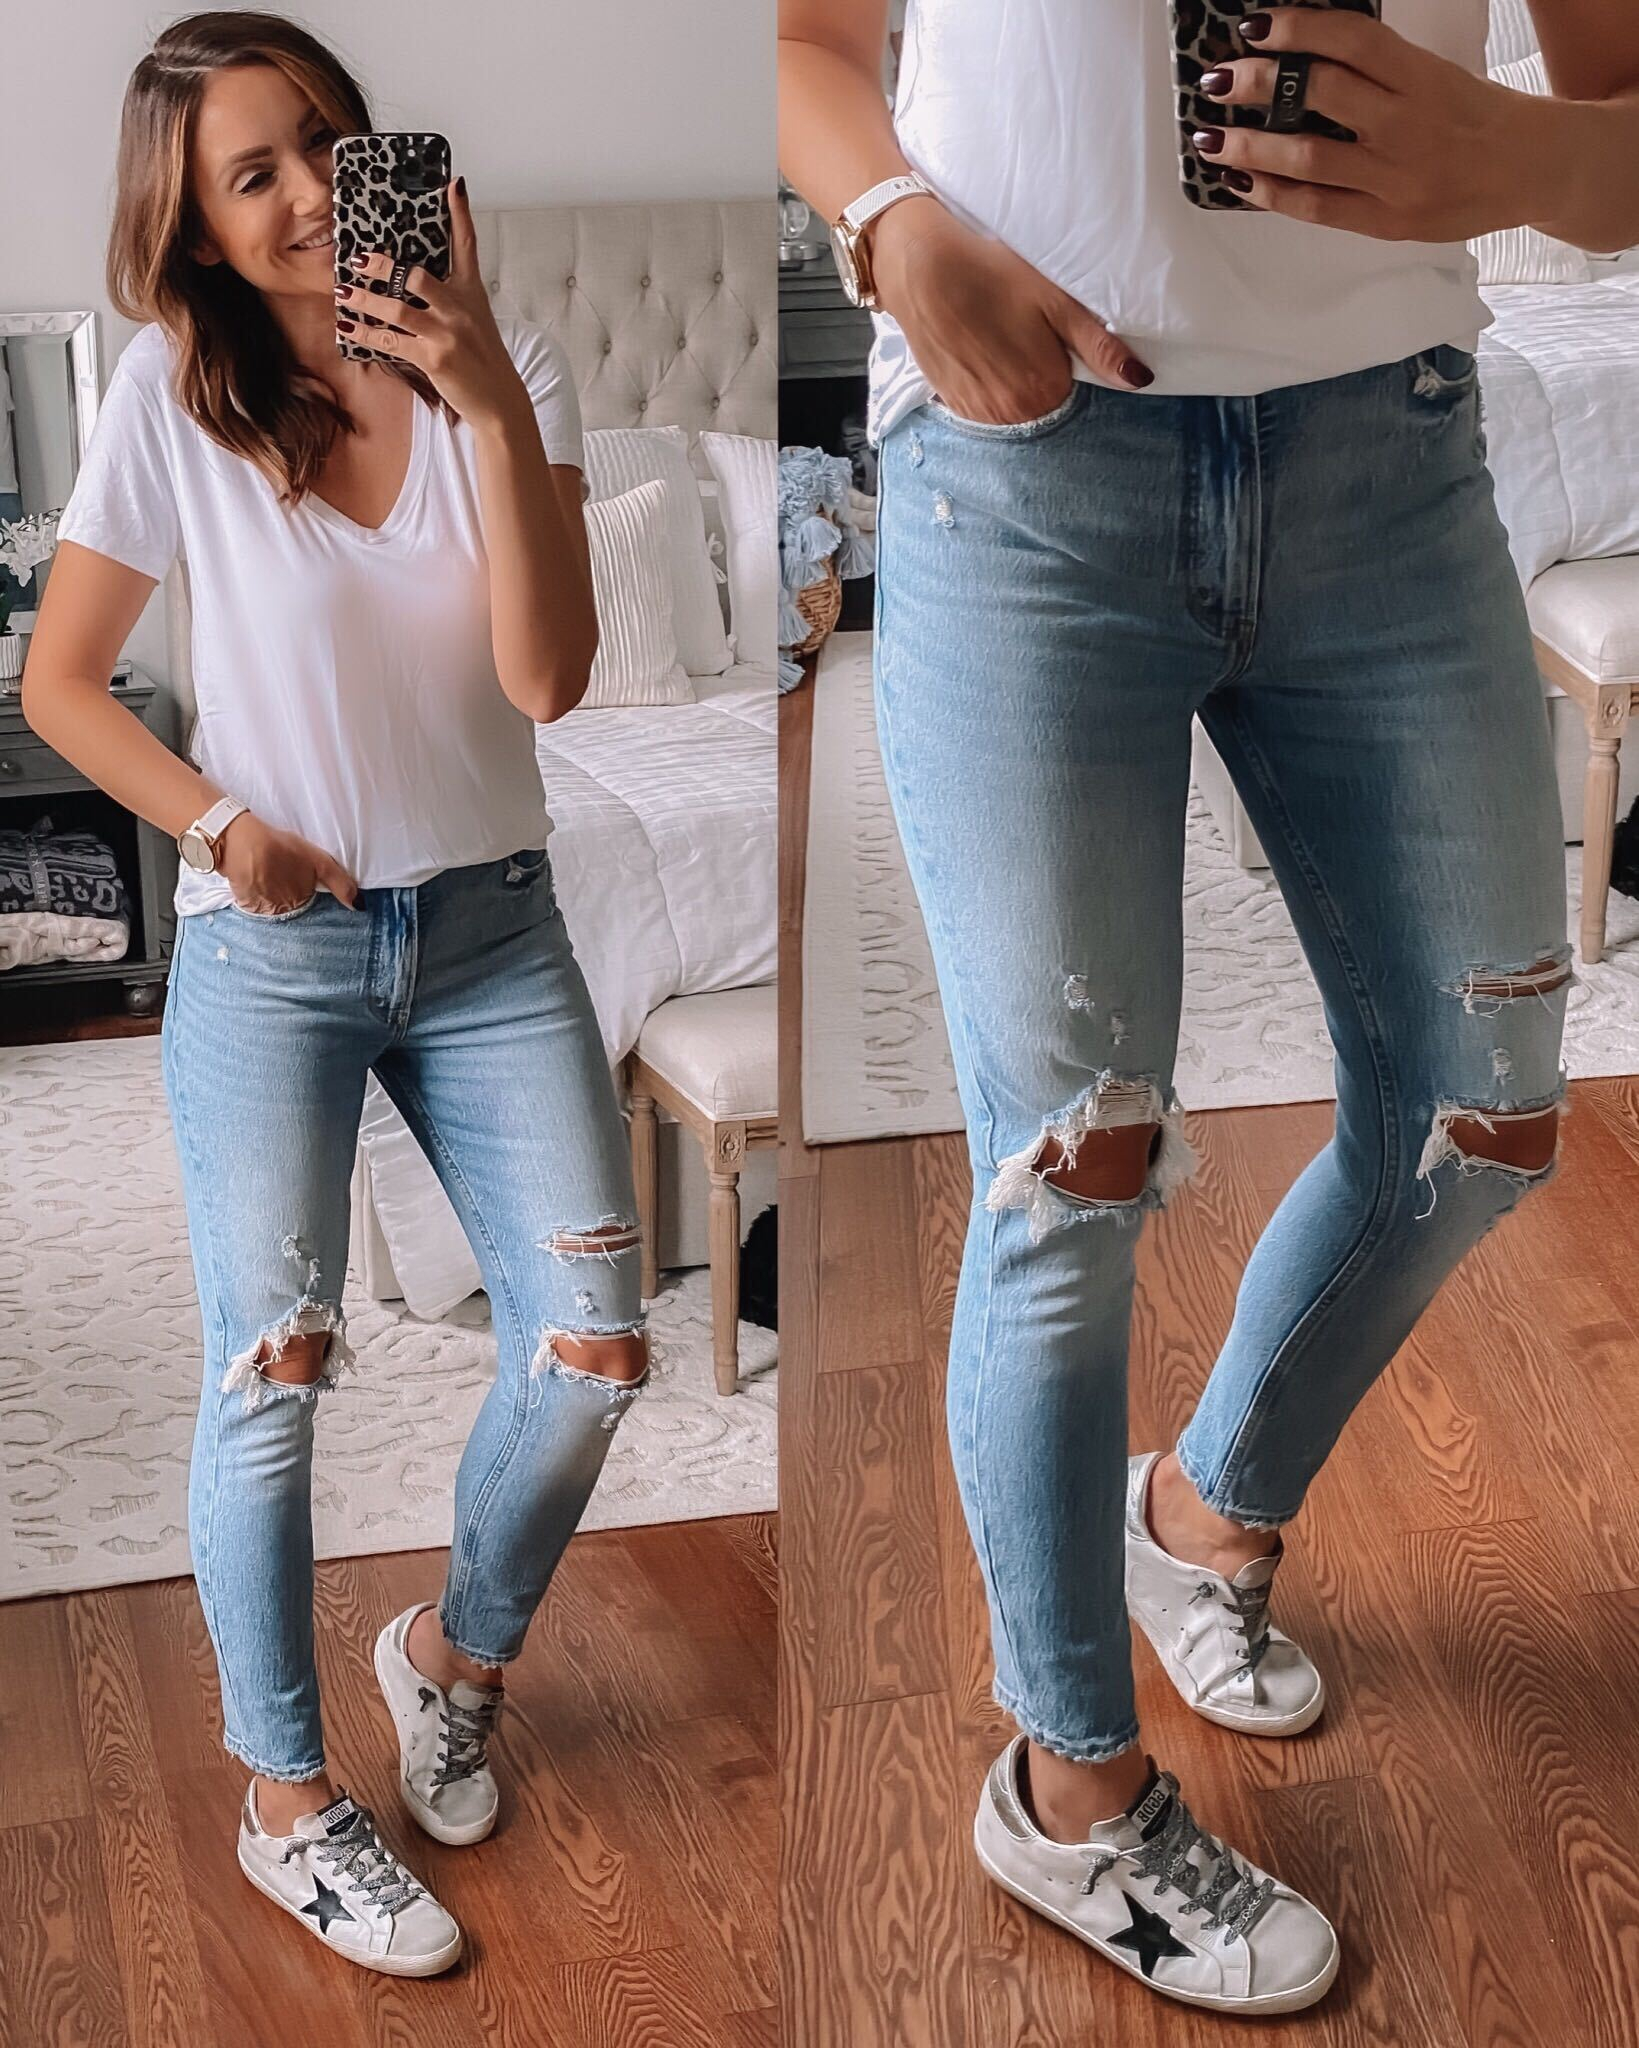 Abercrombie jeans, casual outfit idea